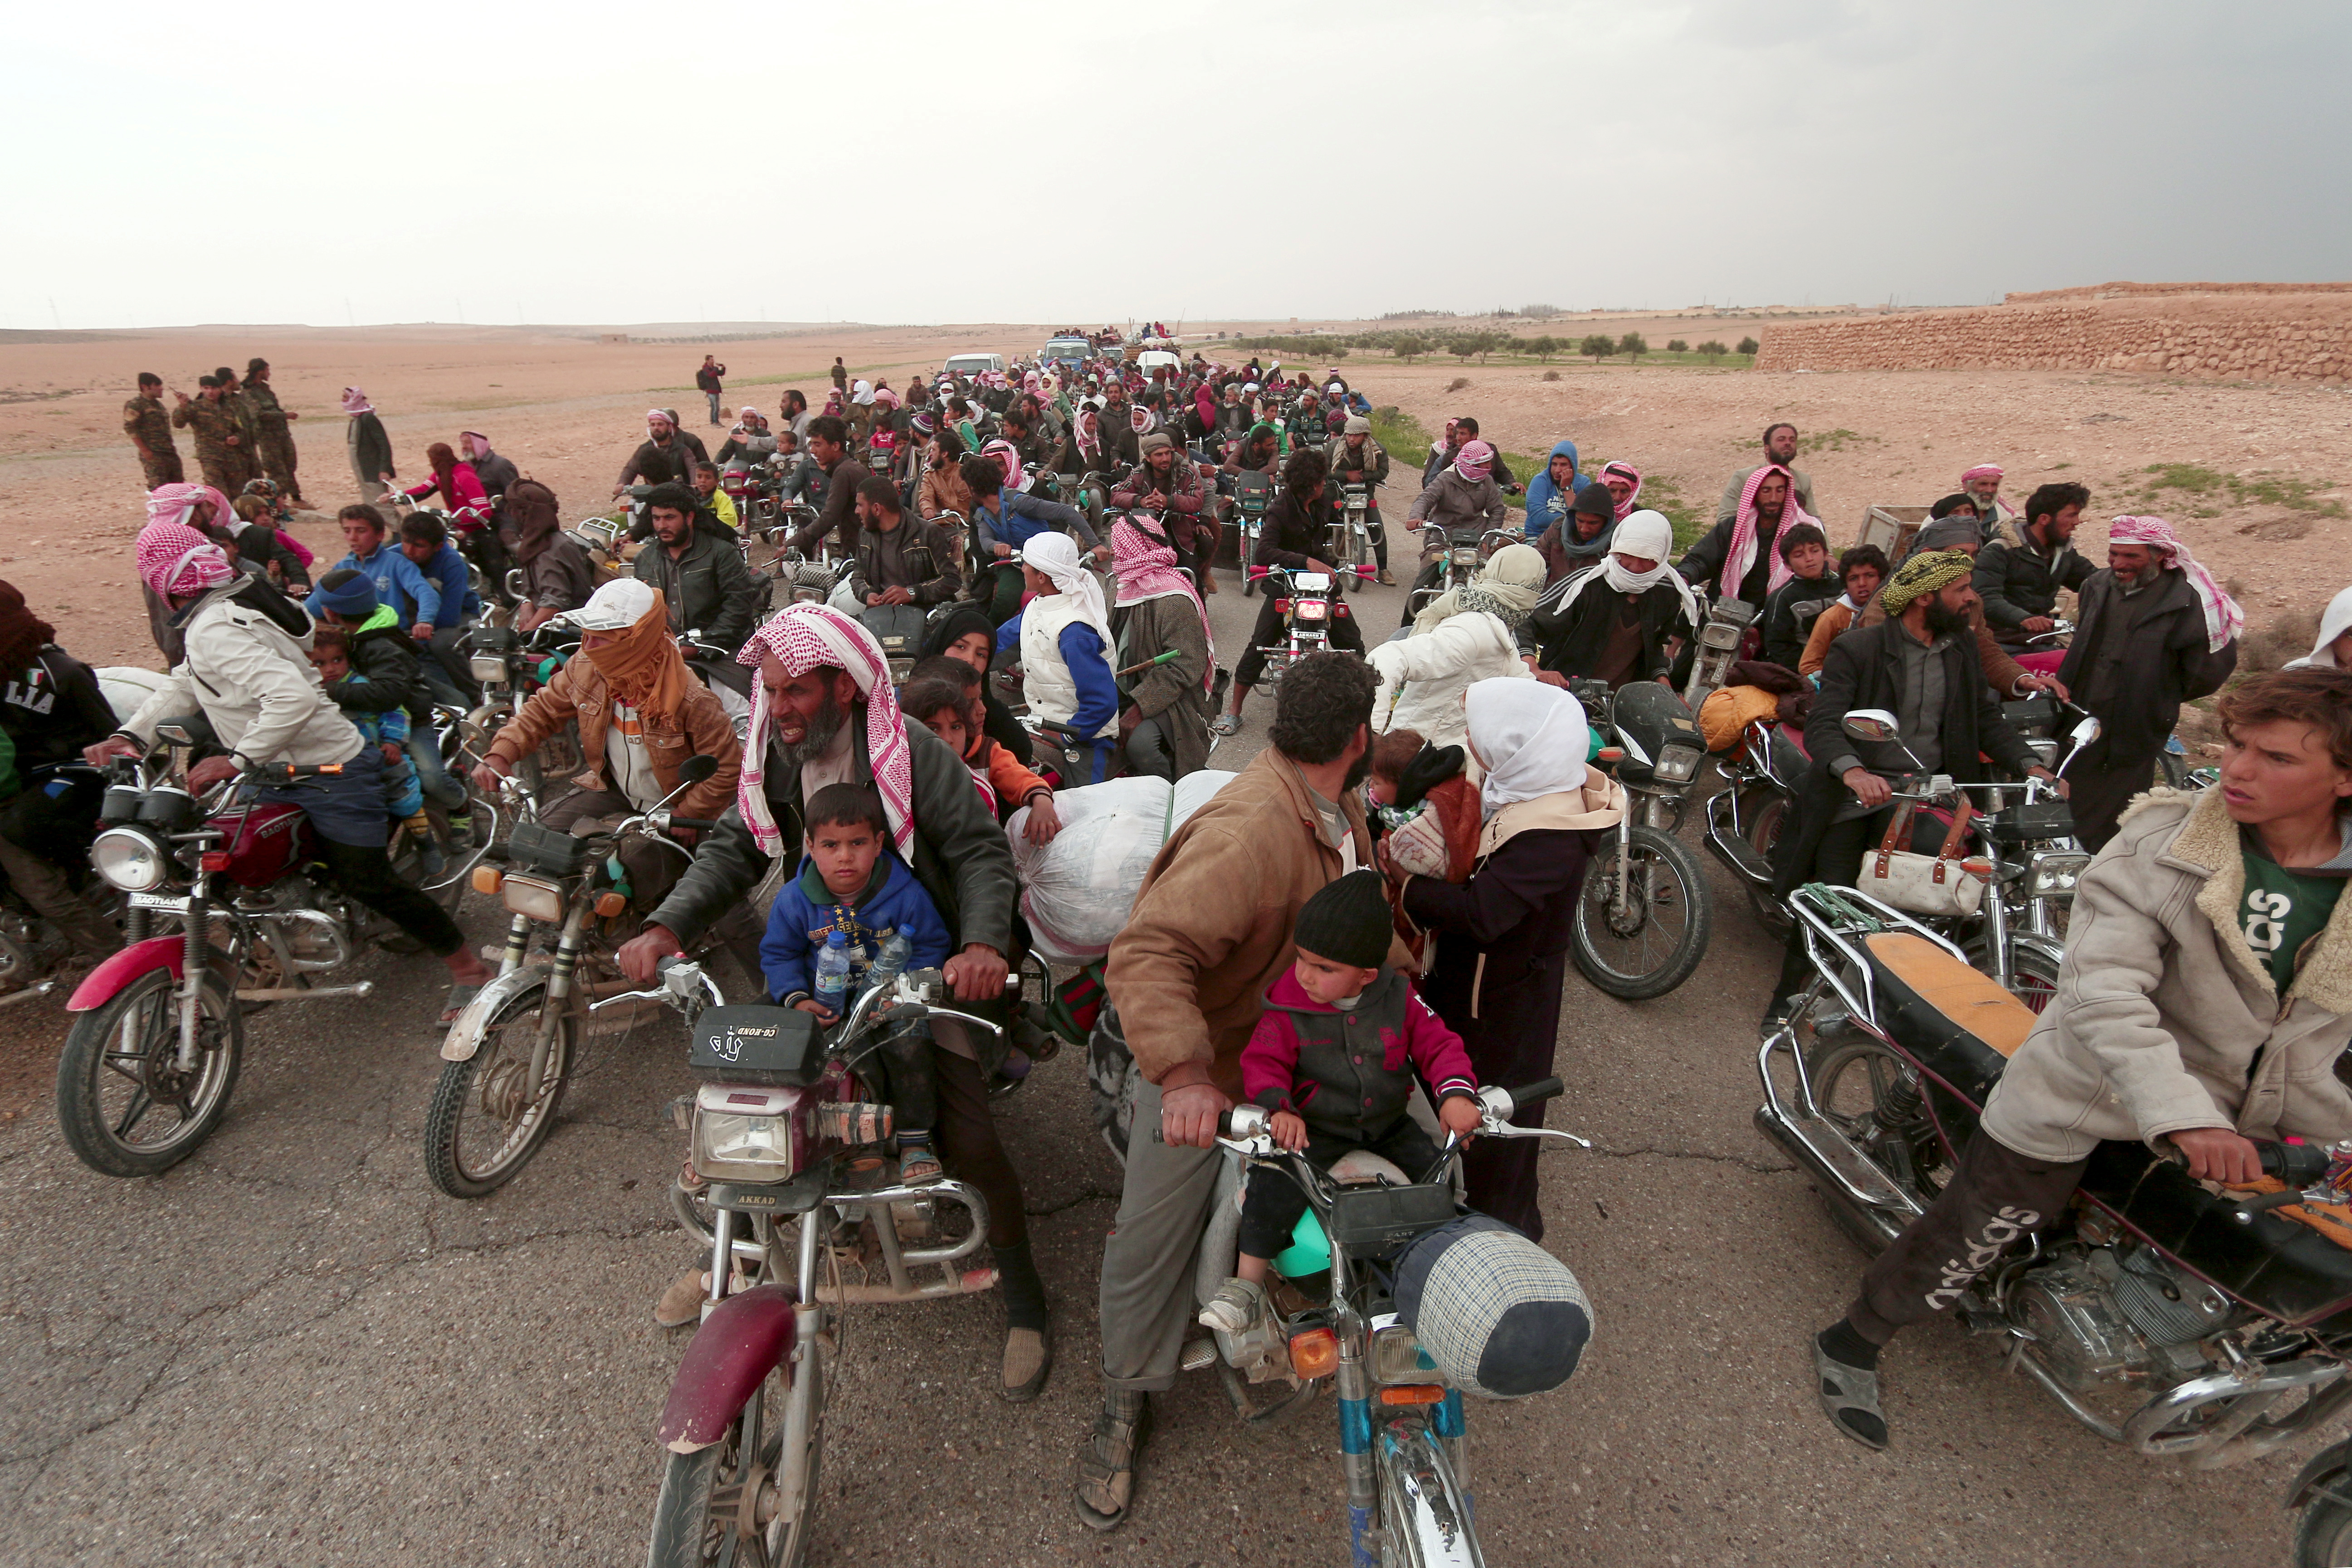 RAQQA 2017-03-30 People fleeing from areas surrounding Euphrates River dam, east of Raqqa city, ride their motorcycles towards Syrian Democratic Forces (SDF) controlled areas, Syria March 30, 2017. REUTERS/Rodi Said TPX IMAGES OF THE DAY Photo: / REUTERS / TT / kod 72000